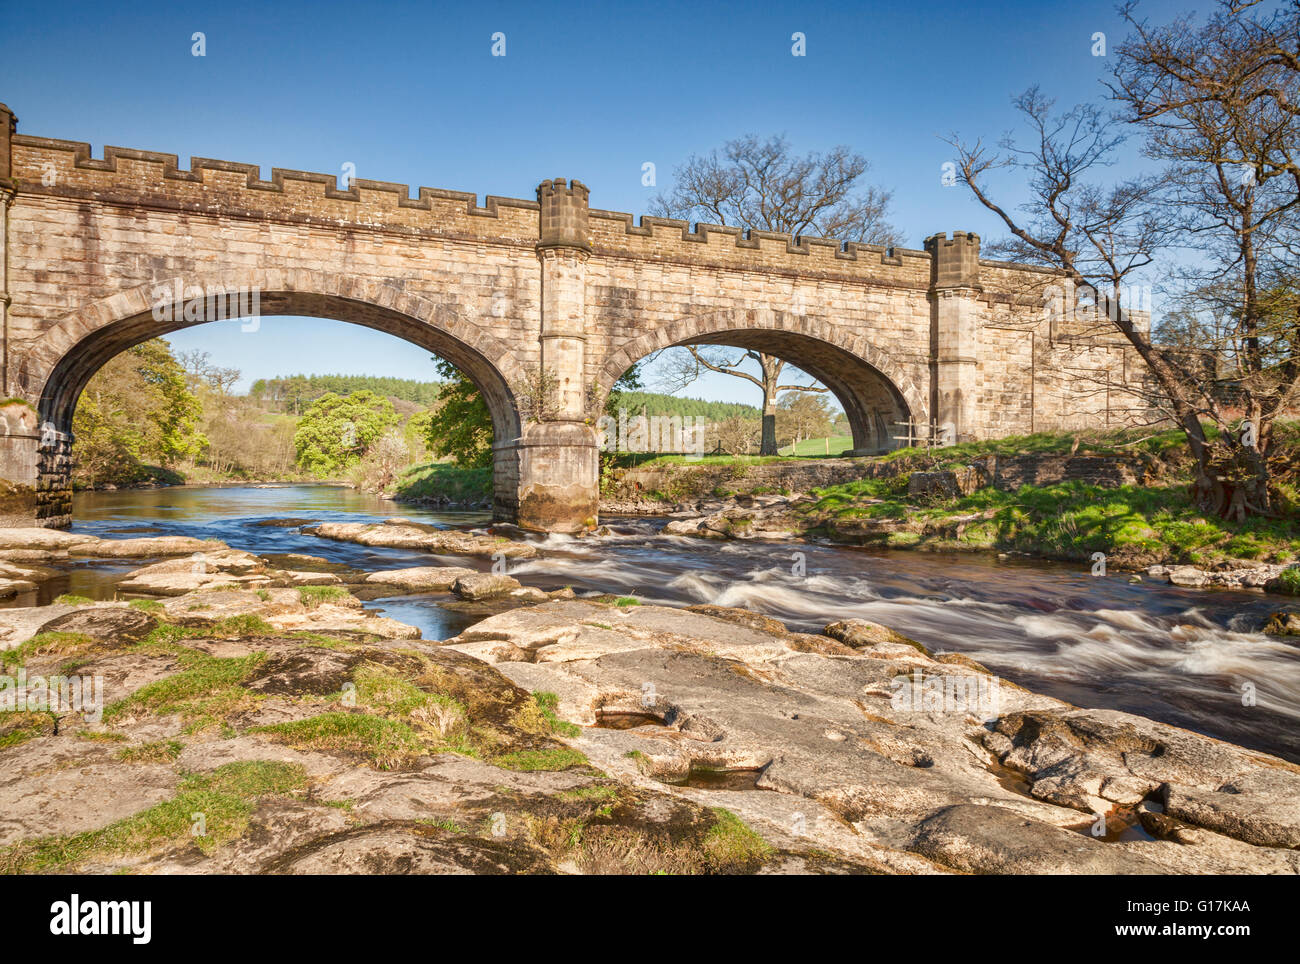 Barden Bridge over the River Wharfe, Bolton Abbey Estate, Yorkshire Dales National Park, North Yorkshire, England, - Stock Image